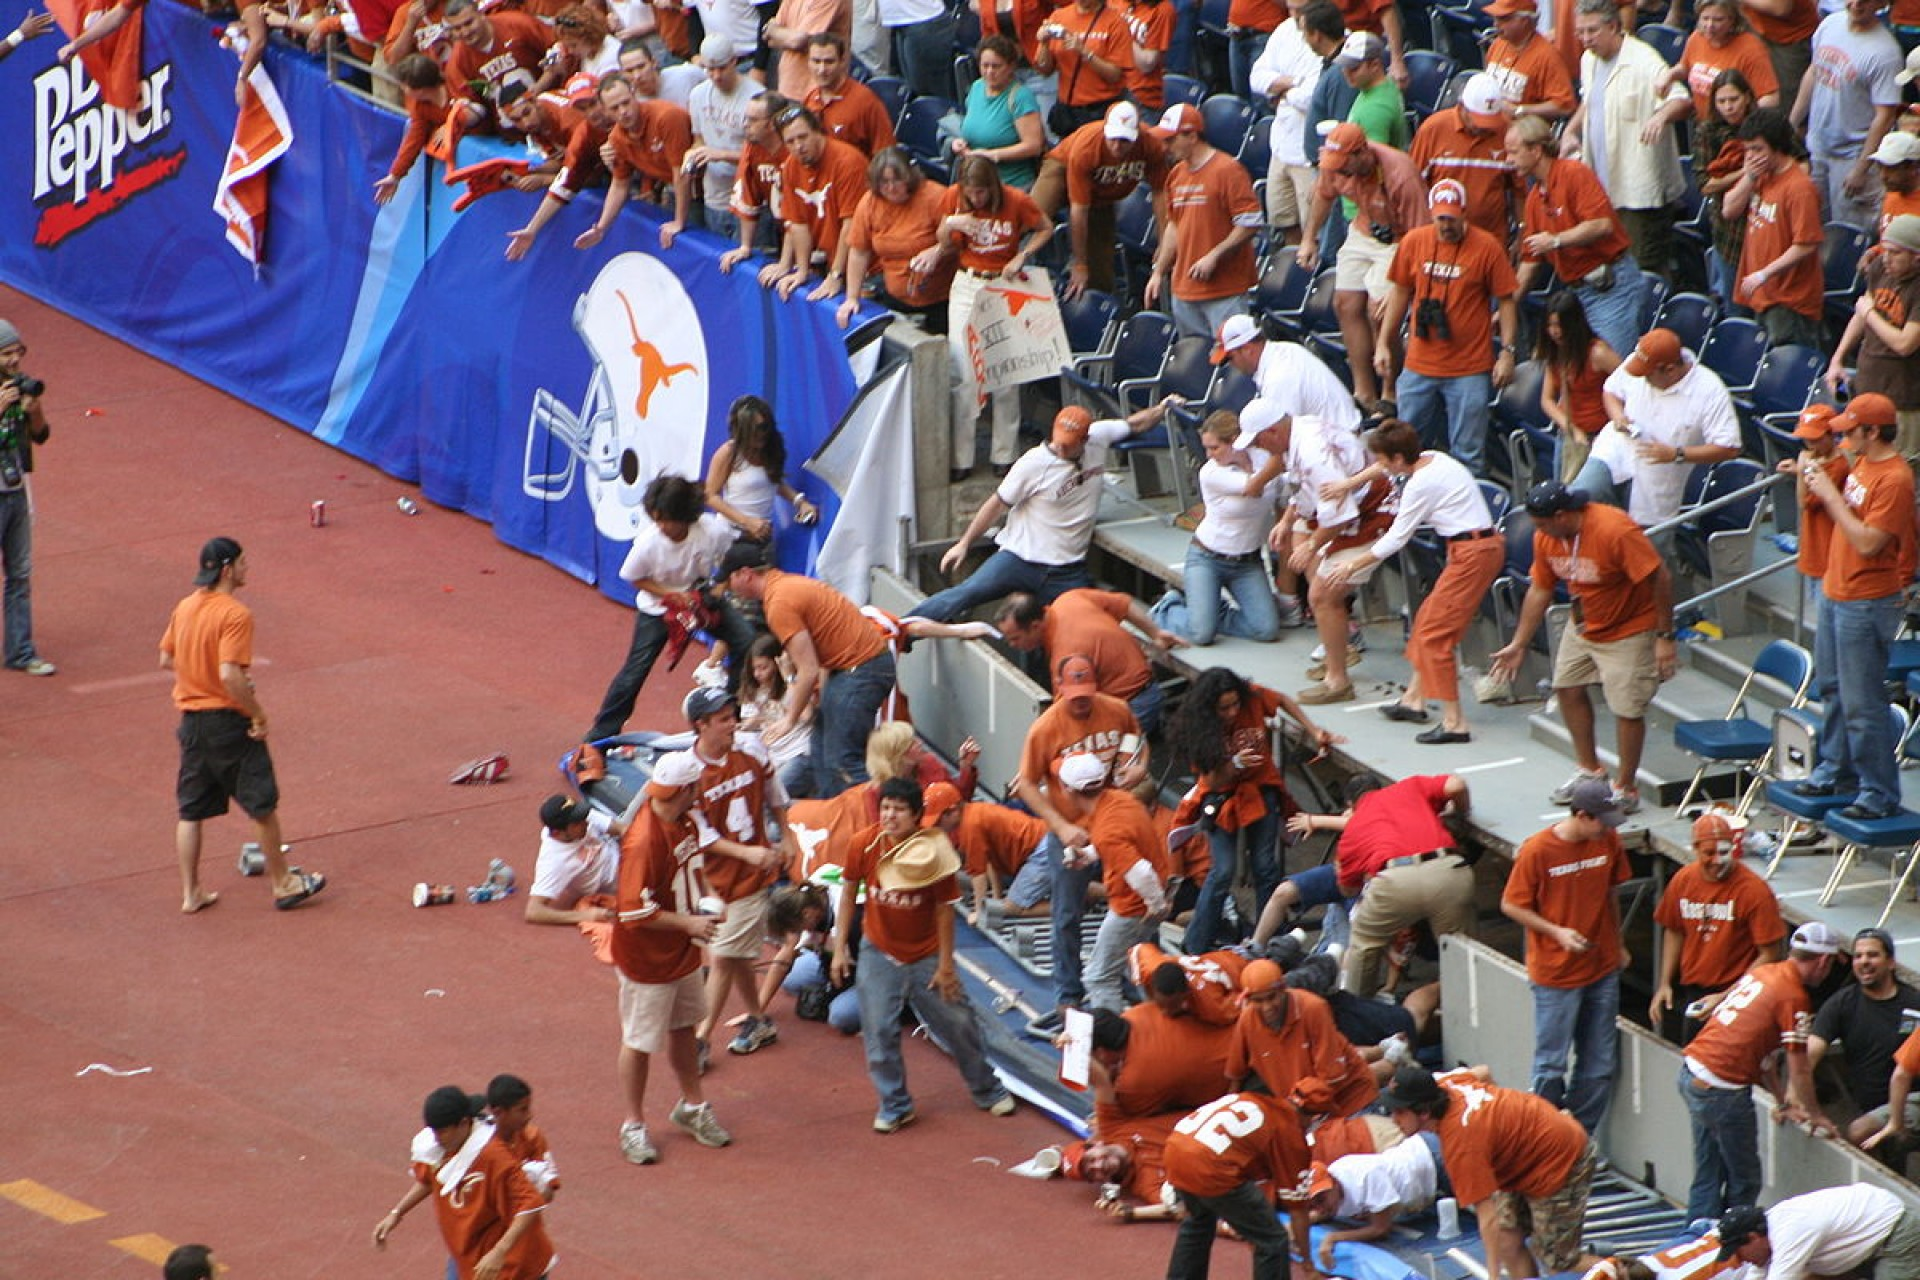 003 Essay Example On Road Accident Wikipedia 1200px Partial Stadium Collapse At Big12 College Football Championship  2005 Imposing1920